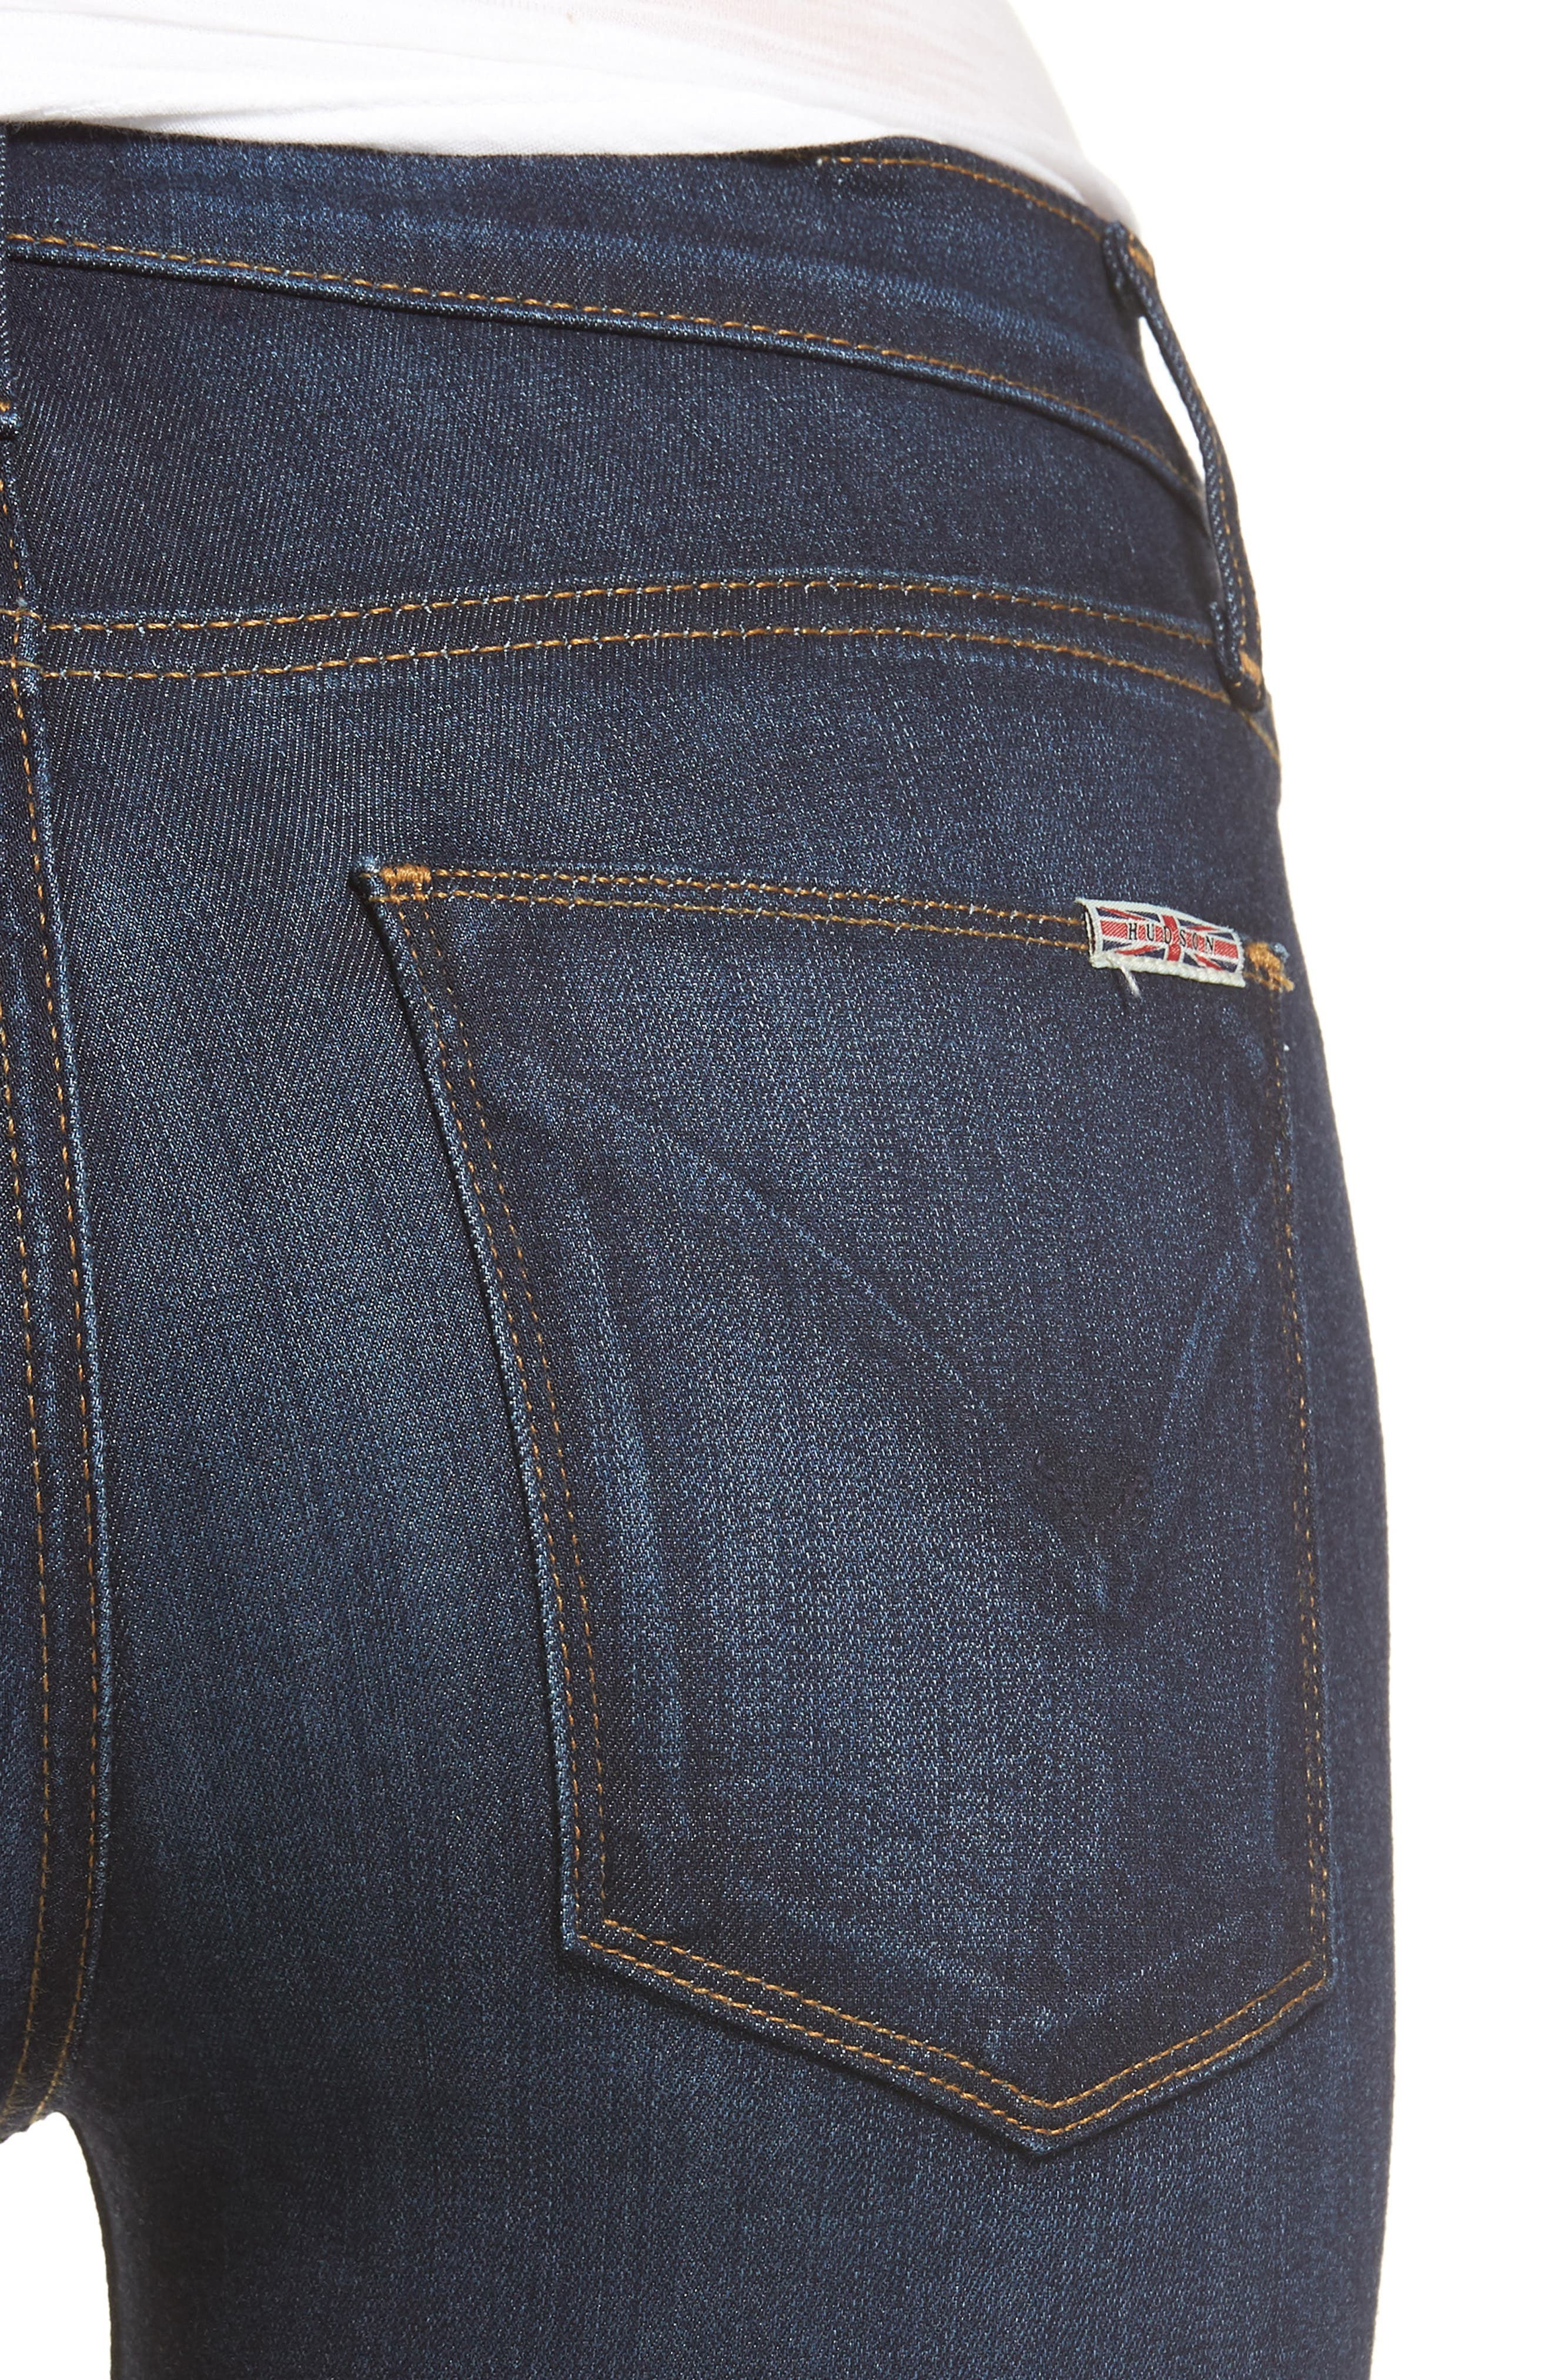 Alternate Image 4  - Hudson Jeans 'Nico' Ankle Super Skinny Jeans (Electrify)